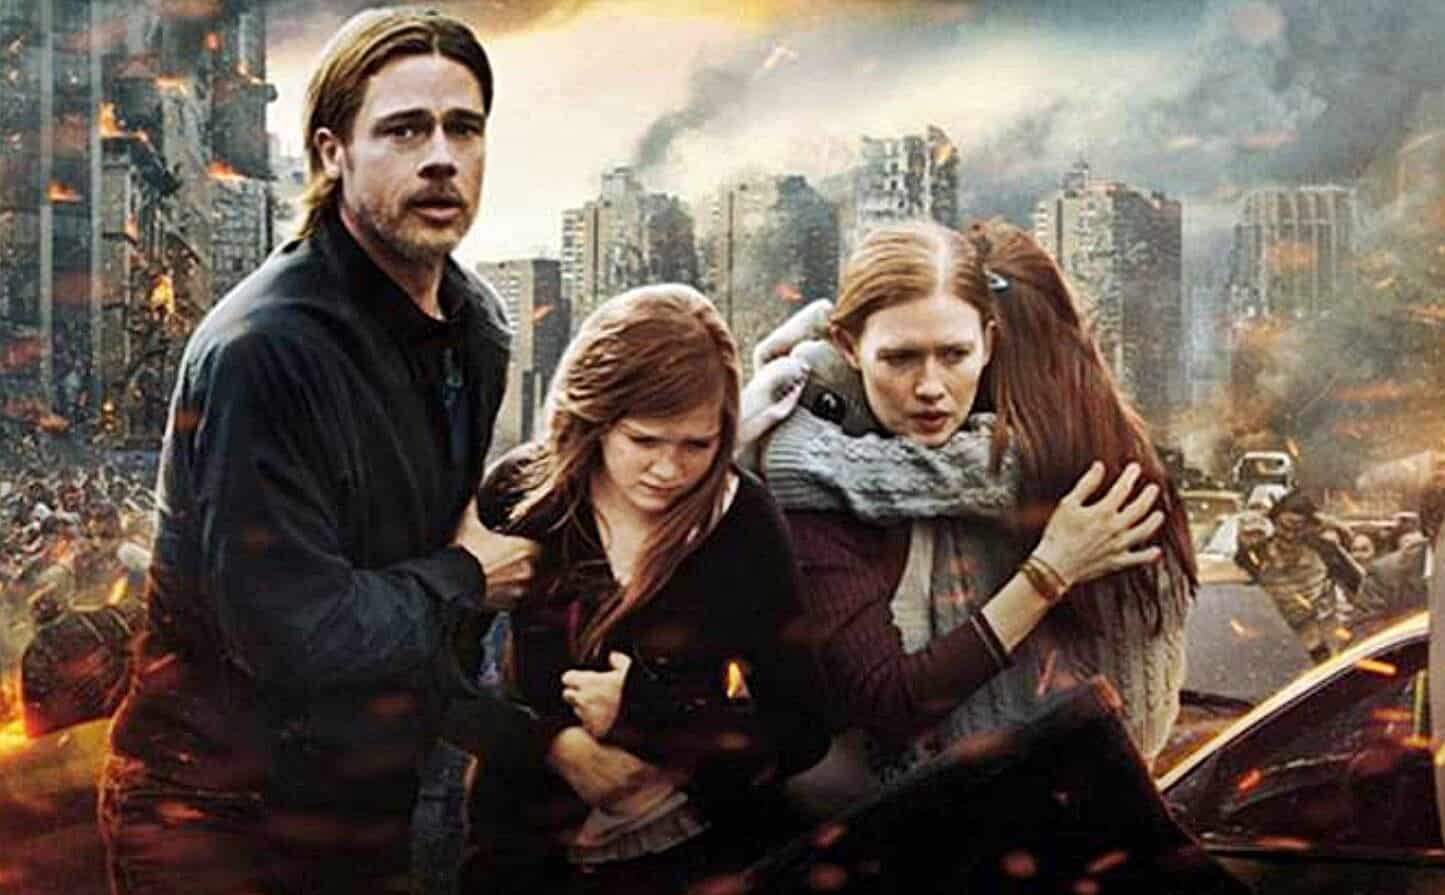 World War Z 2' Has Reportedly Been Cancelled By Paramount